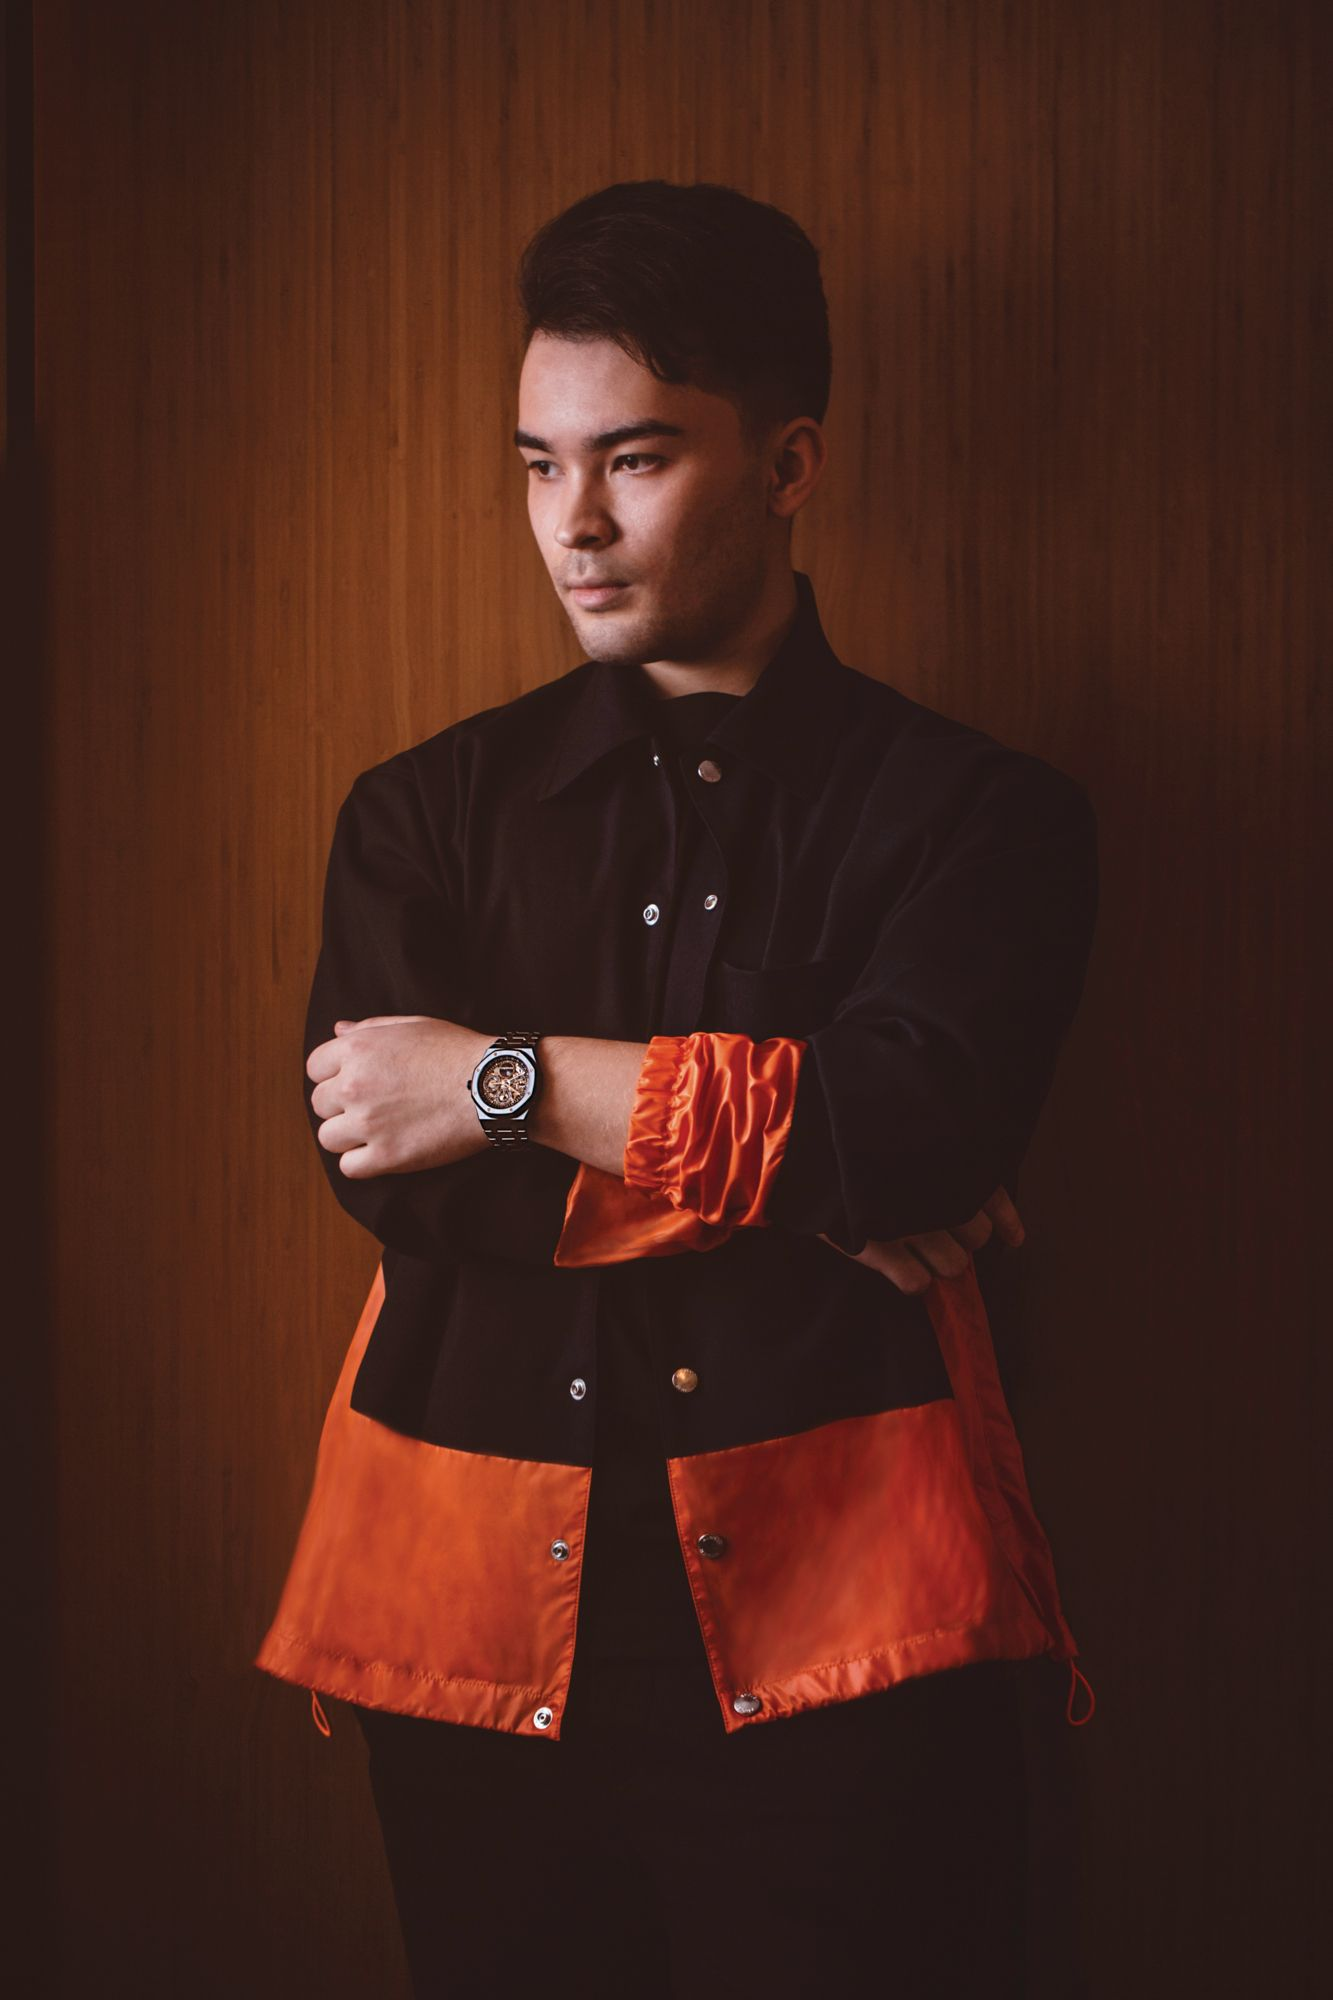 What's Next For Austen Chu? The Entrepreneur Is Launching A Second-Hand Watch Business In Hong Kong